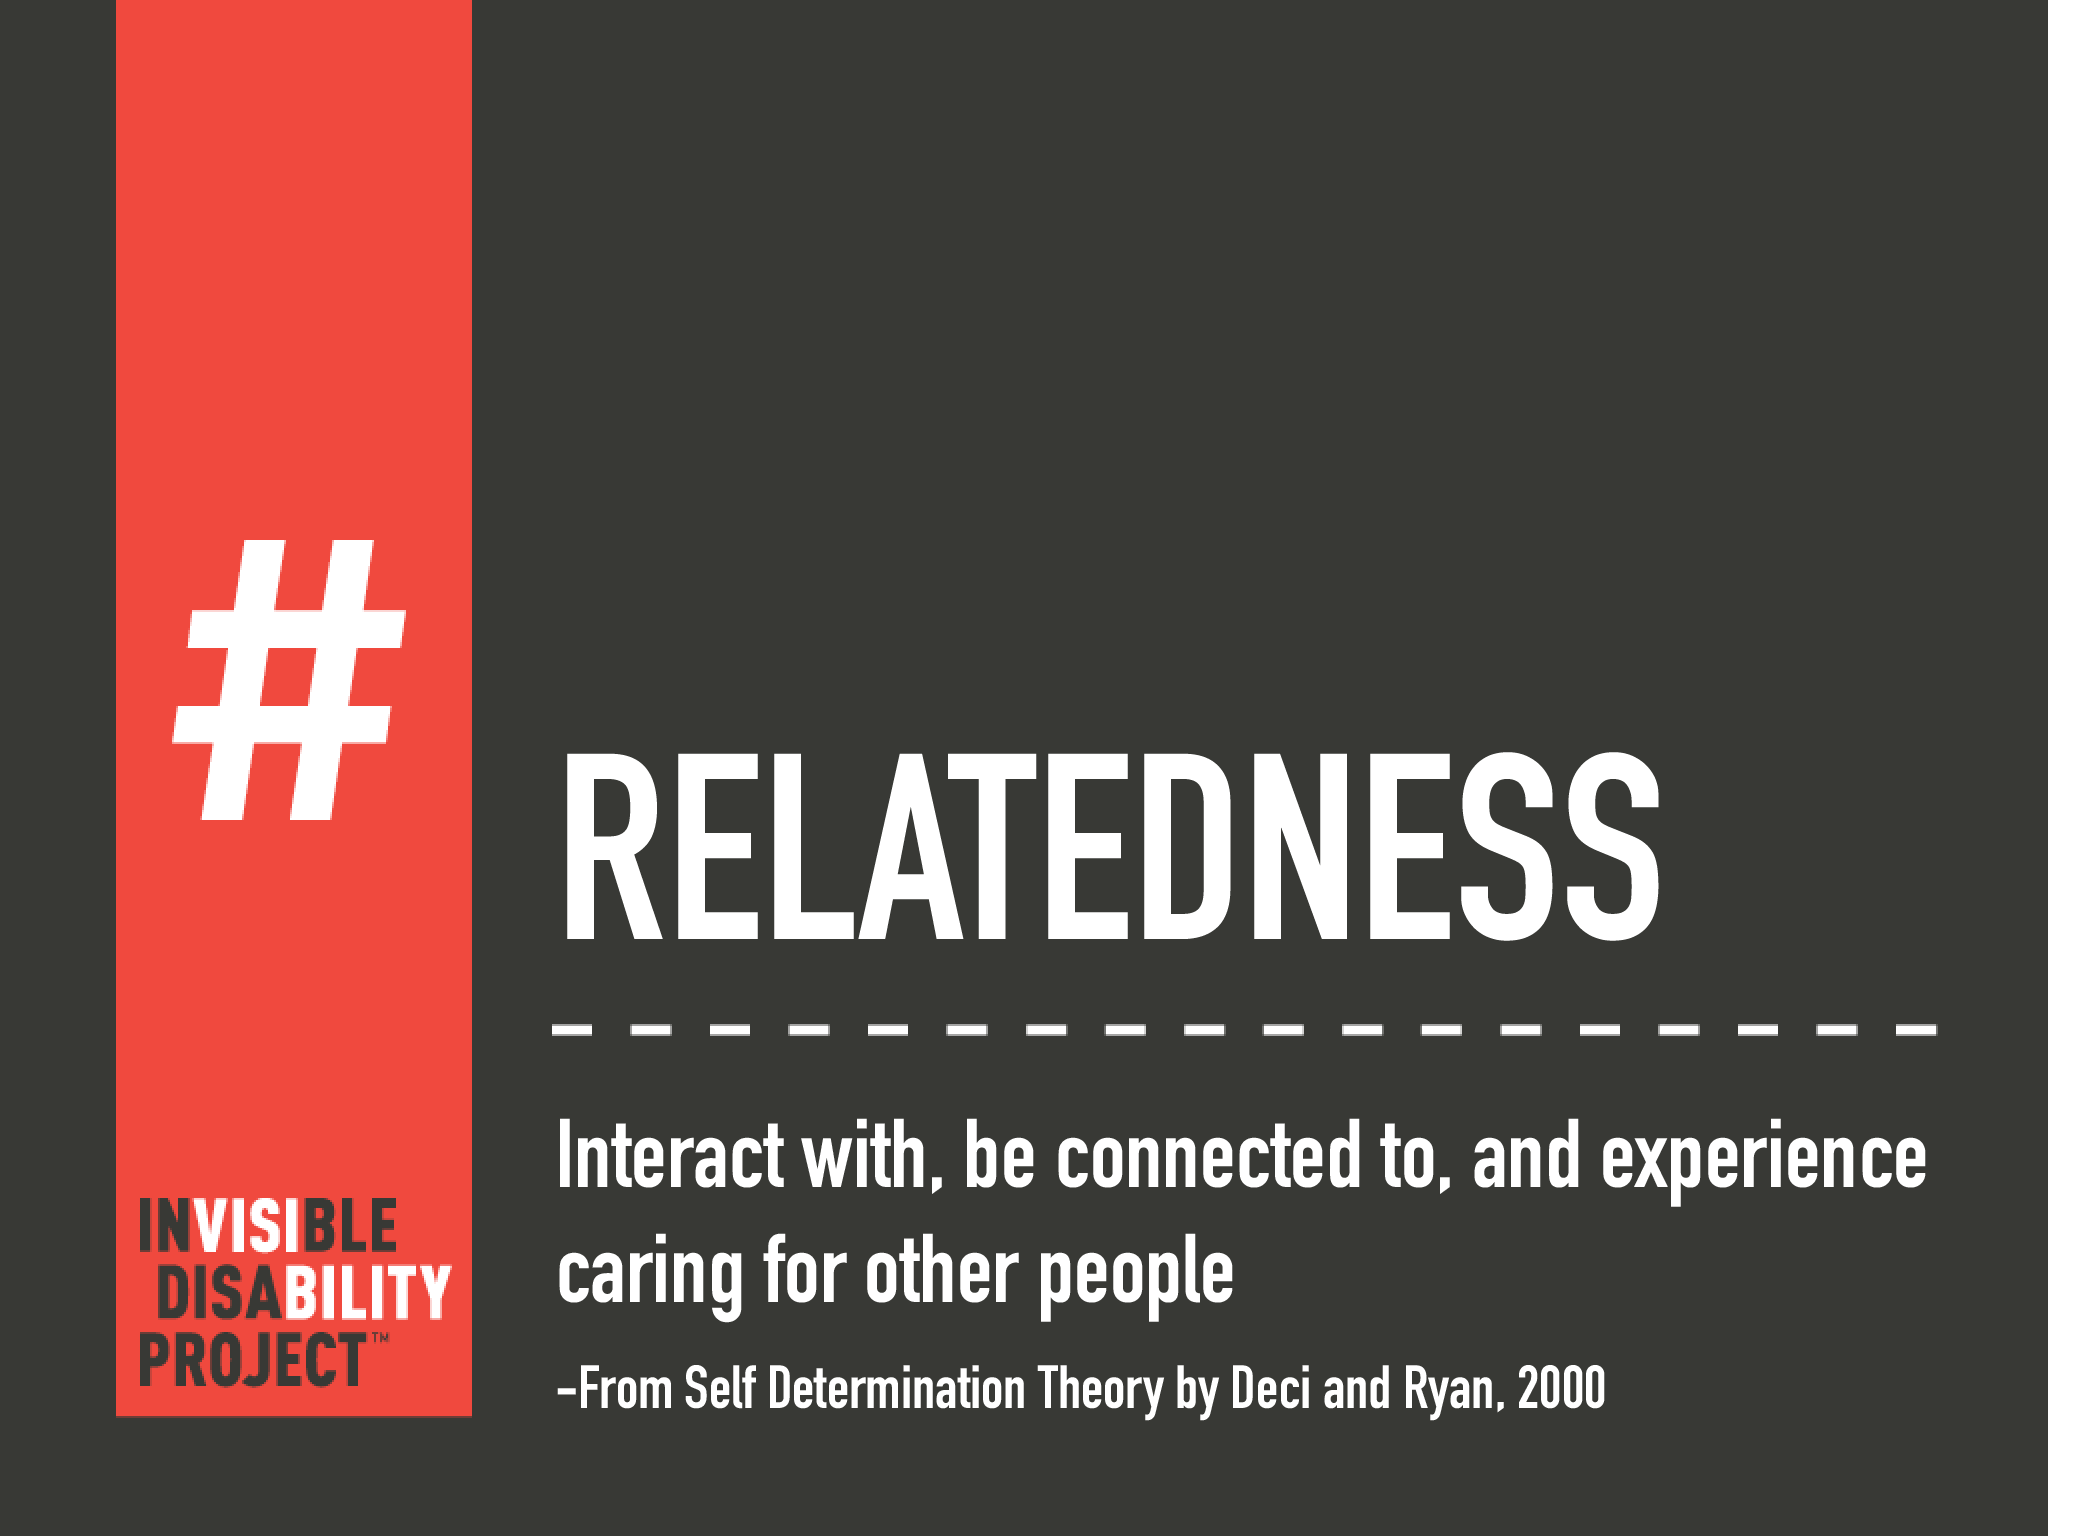 Relatedness: Interact with, be connected to, and experience caring for other people.